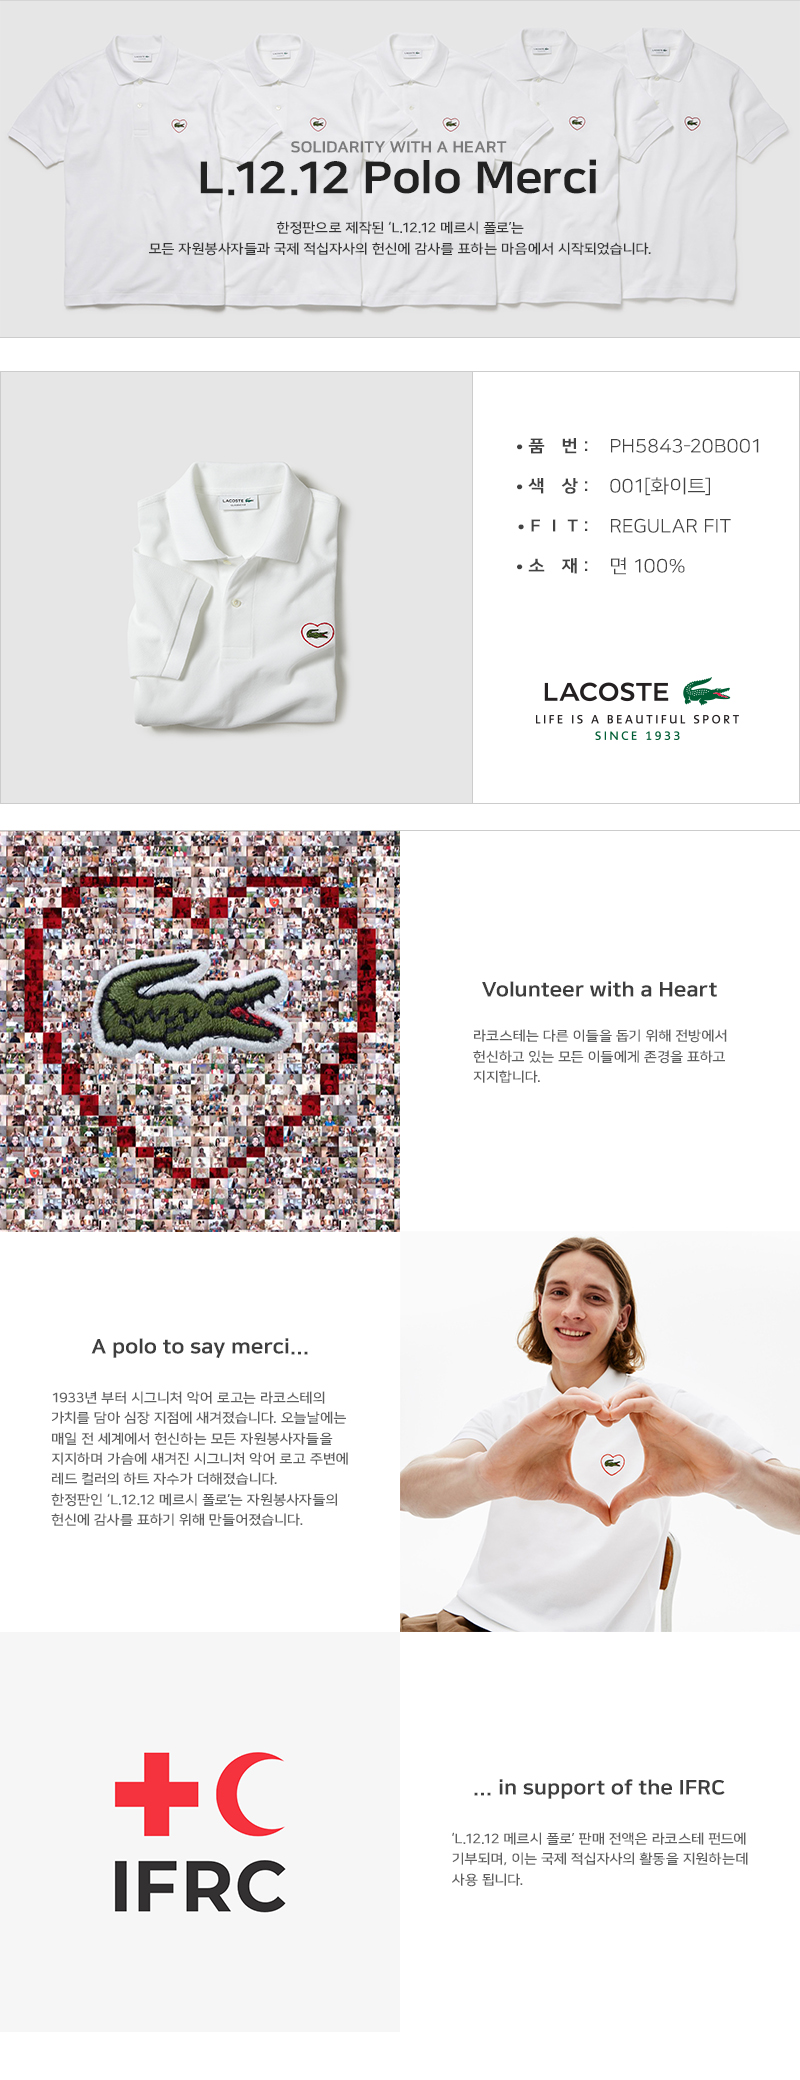 라코스테(LACOSTE) 공용 L.12.12.Polo Merci LCST PH5843-20B001